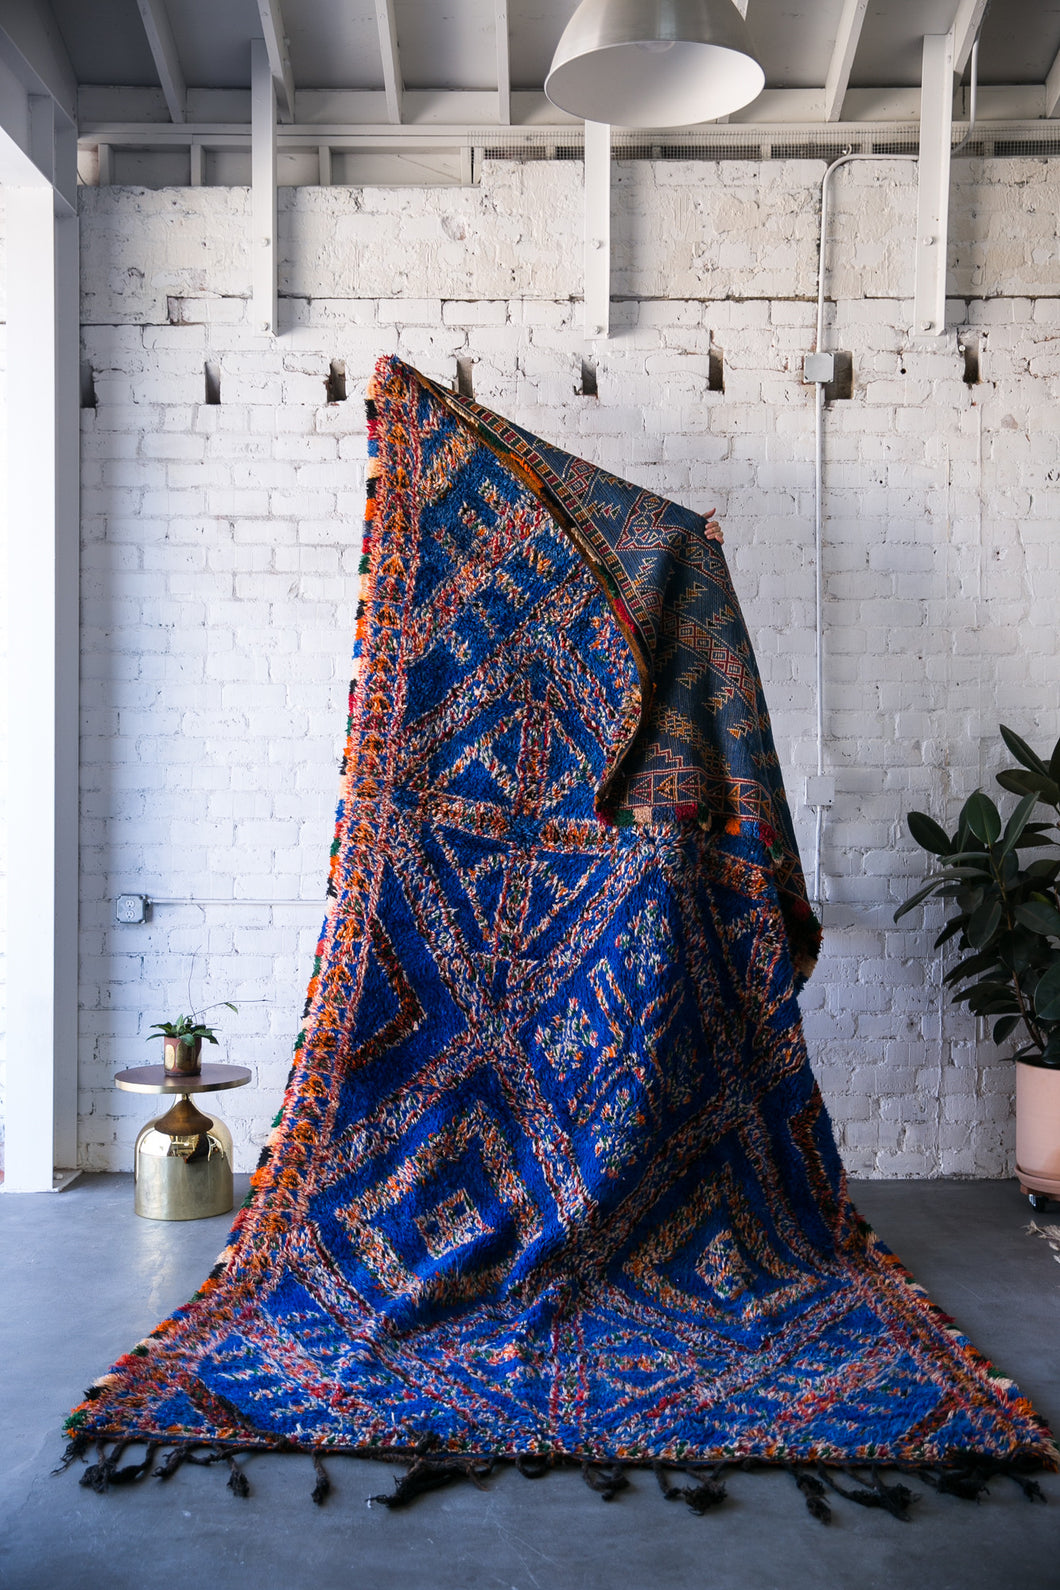 [SOLD] BIG BLUE boucherouite vintage moroccan berber carpet